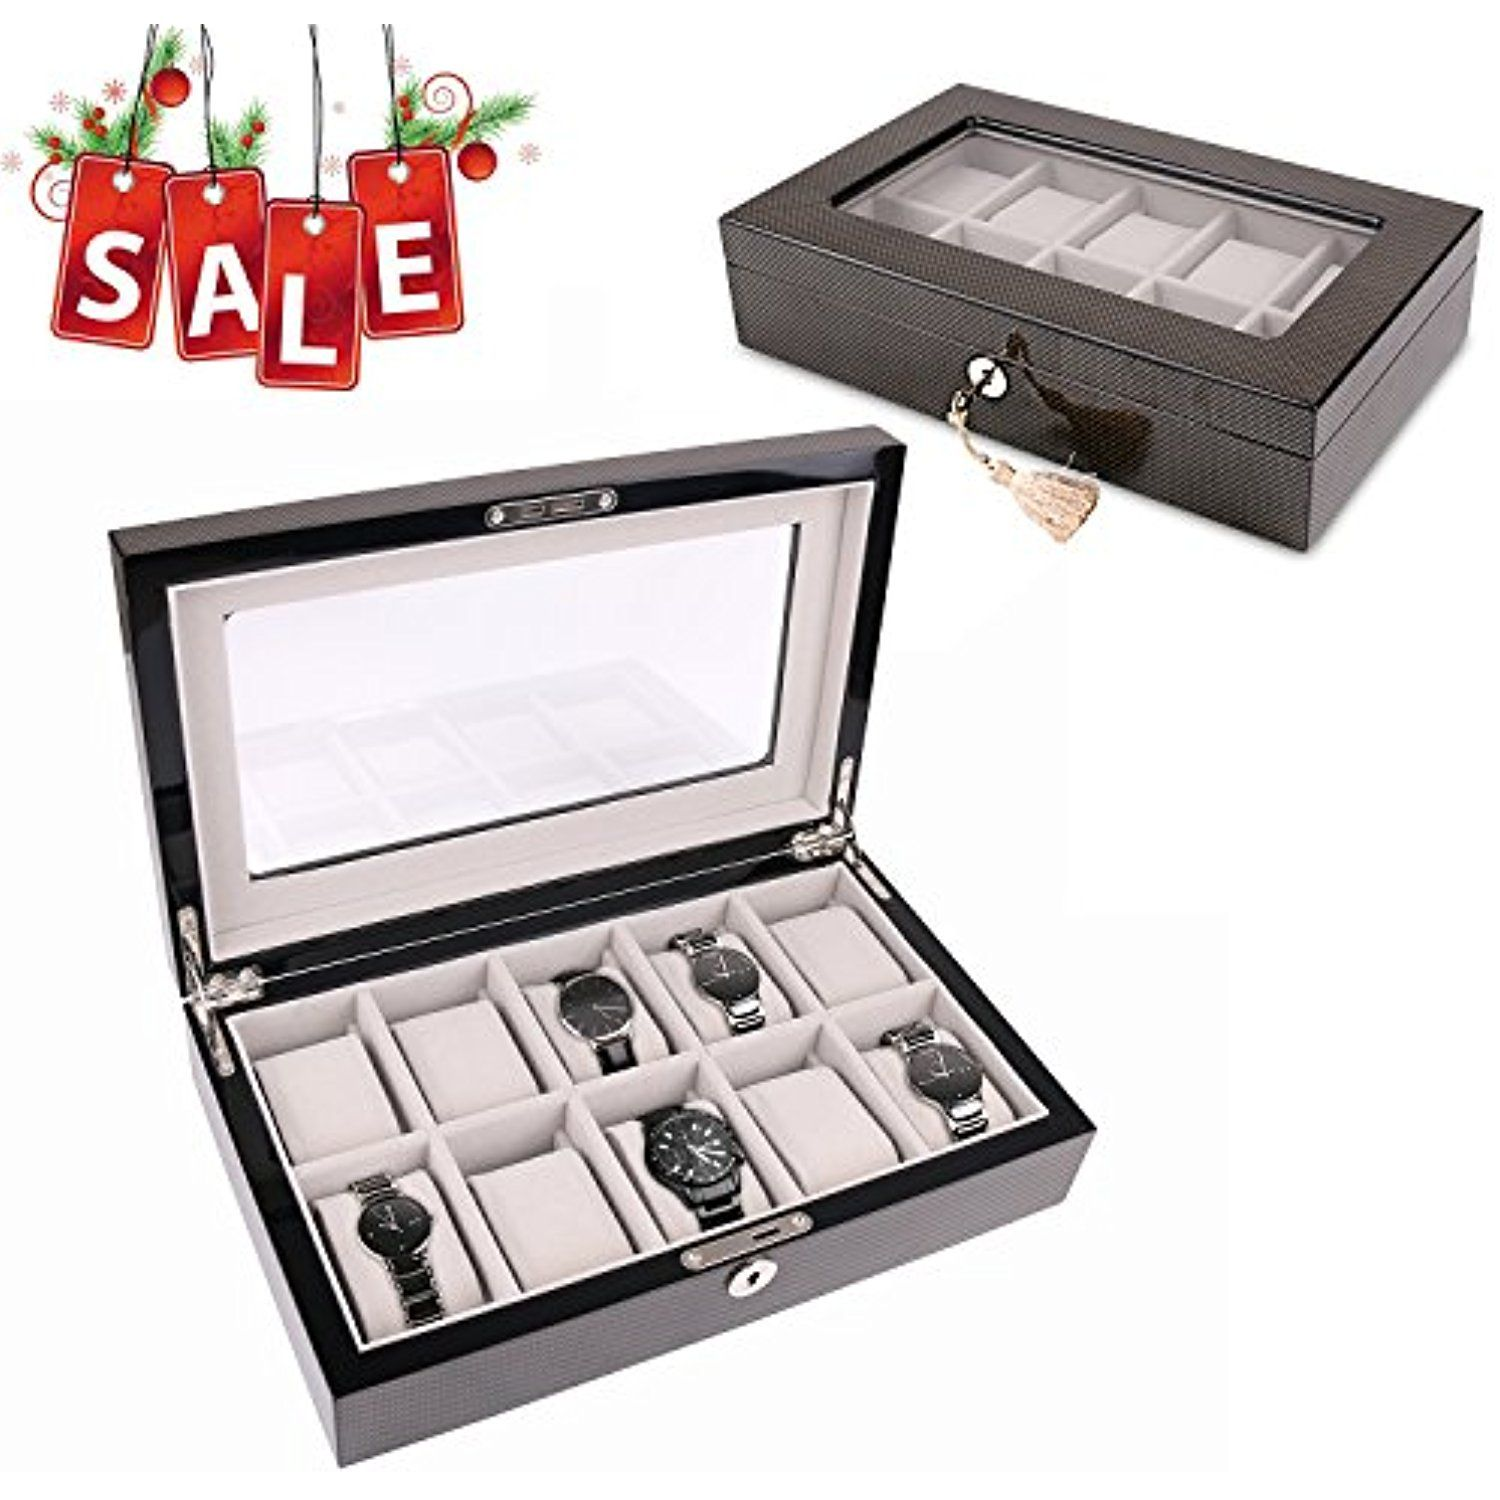 A Comely Lacquer Watch Box 10 Slot Luxury Watch Organizer Display Case For Storage And Collection Glass To Watch Organizer Display Case Decorative Accessories